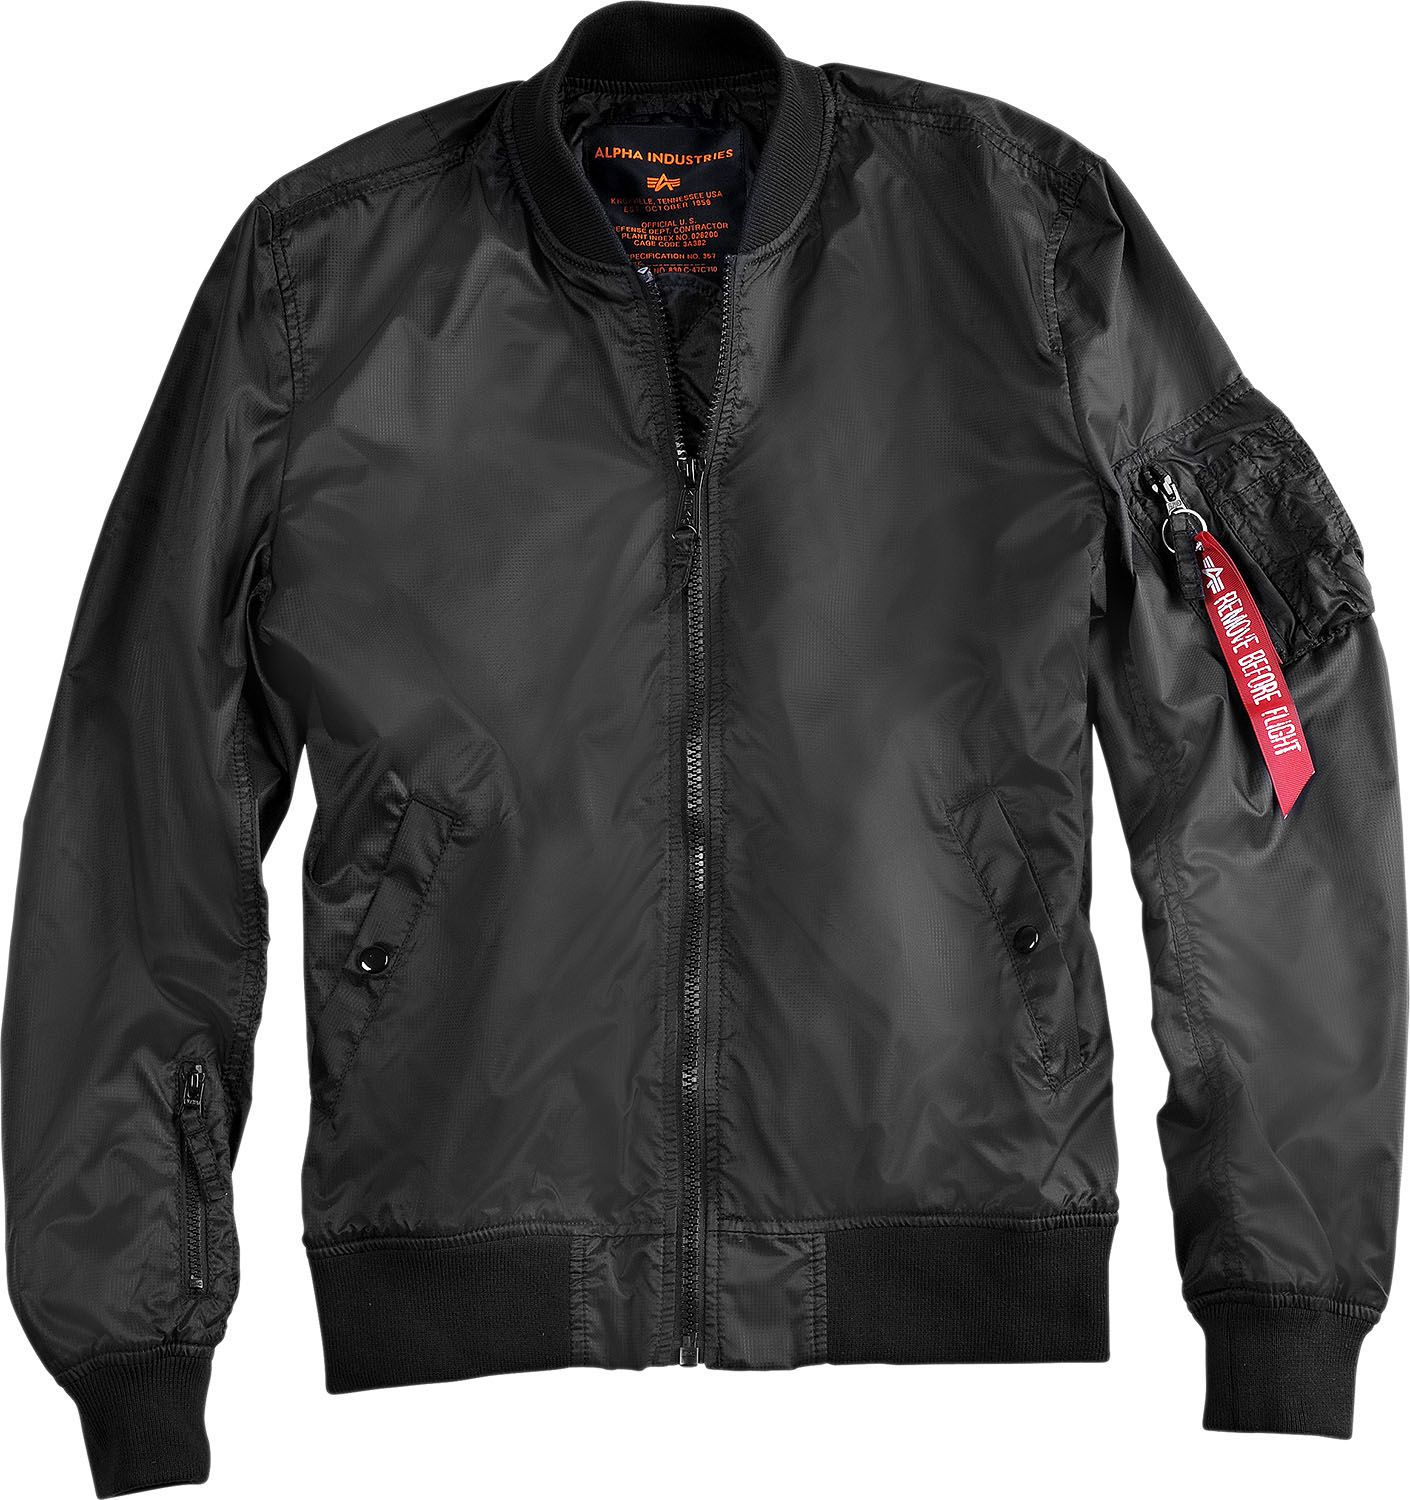 MA1 RS Alpha Industries